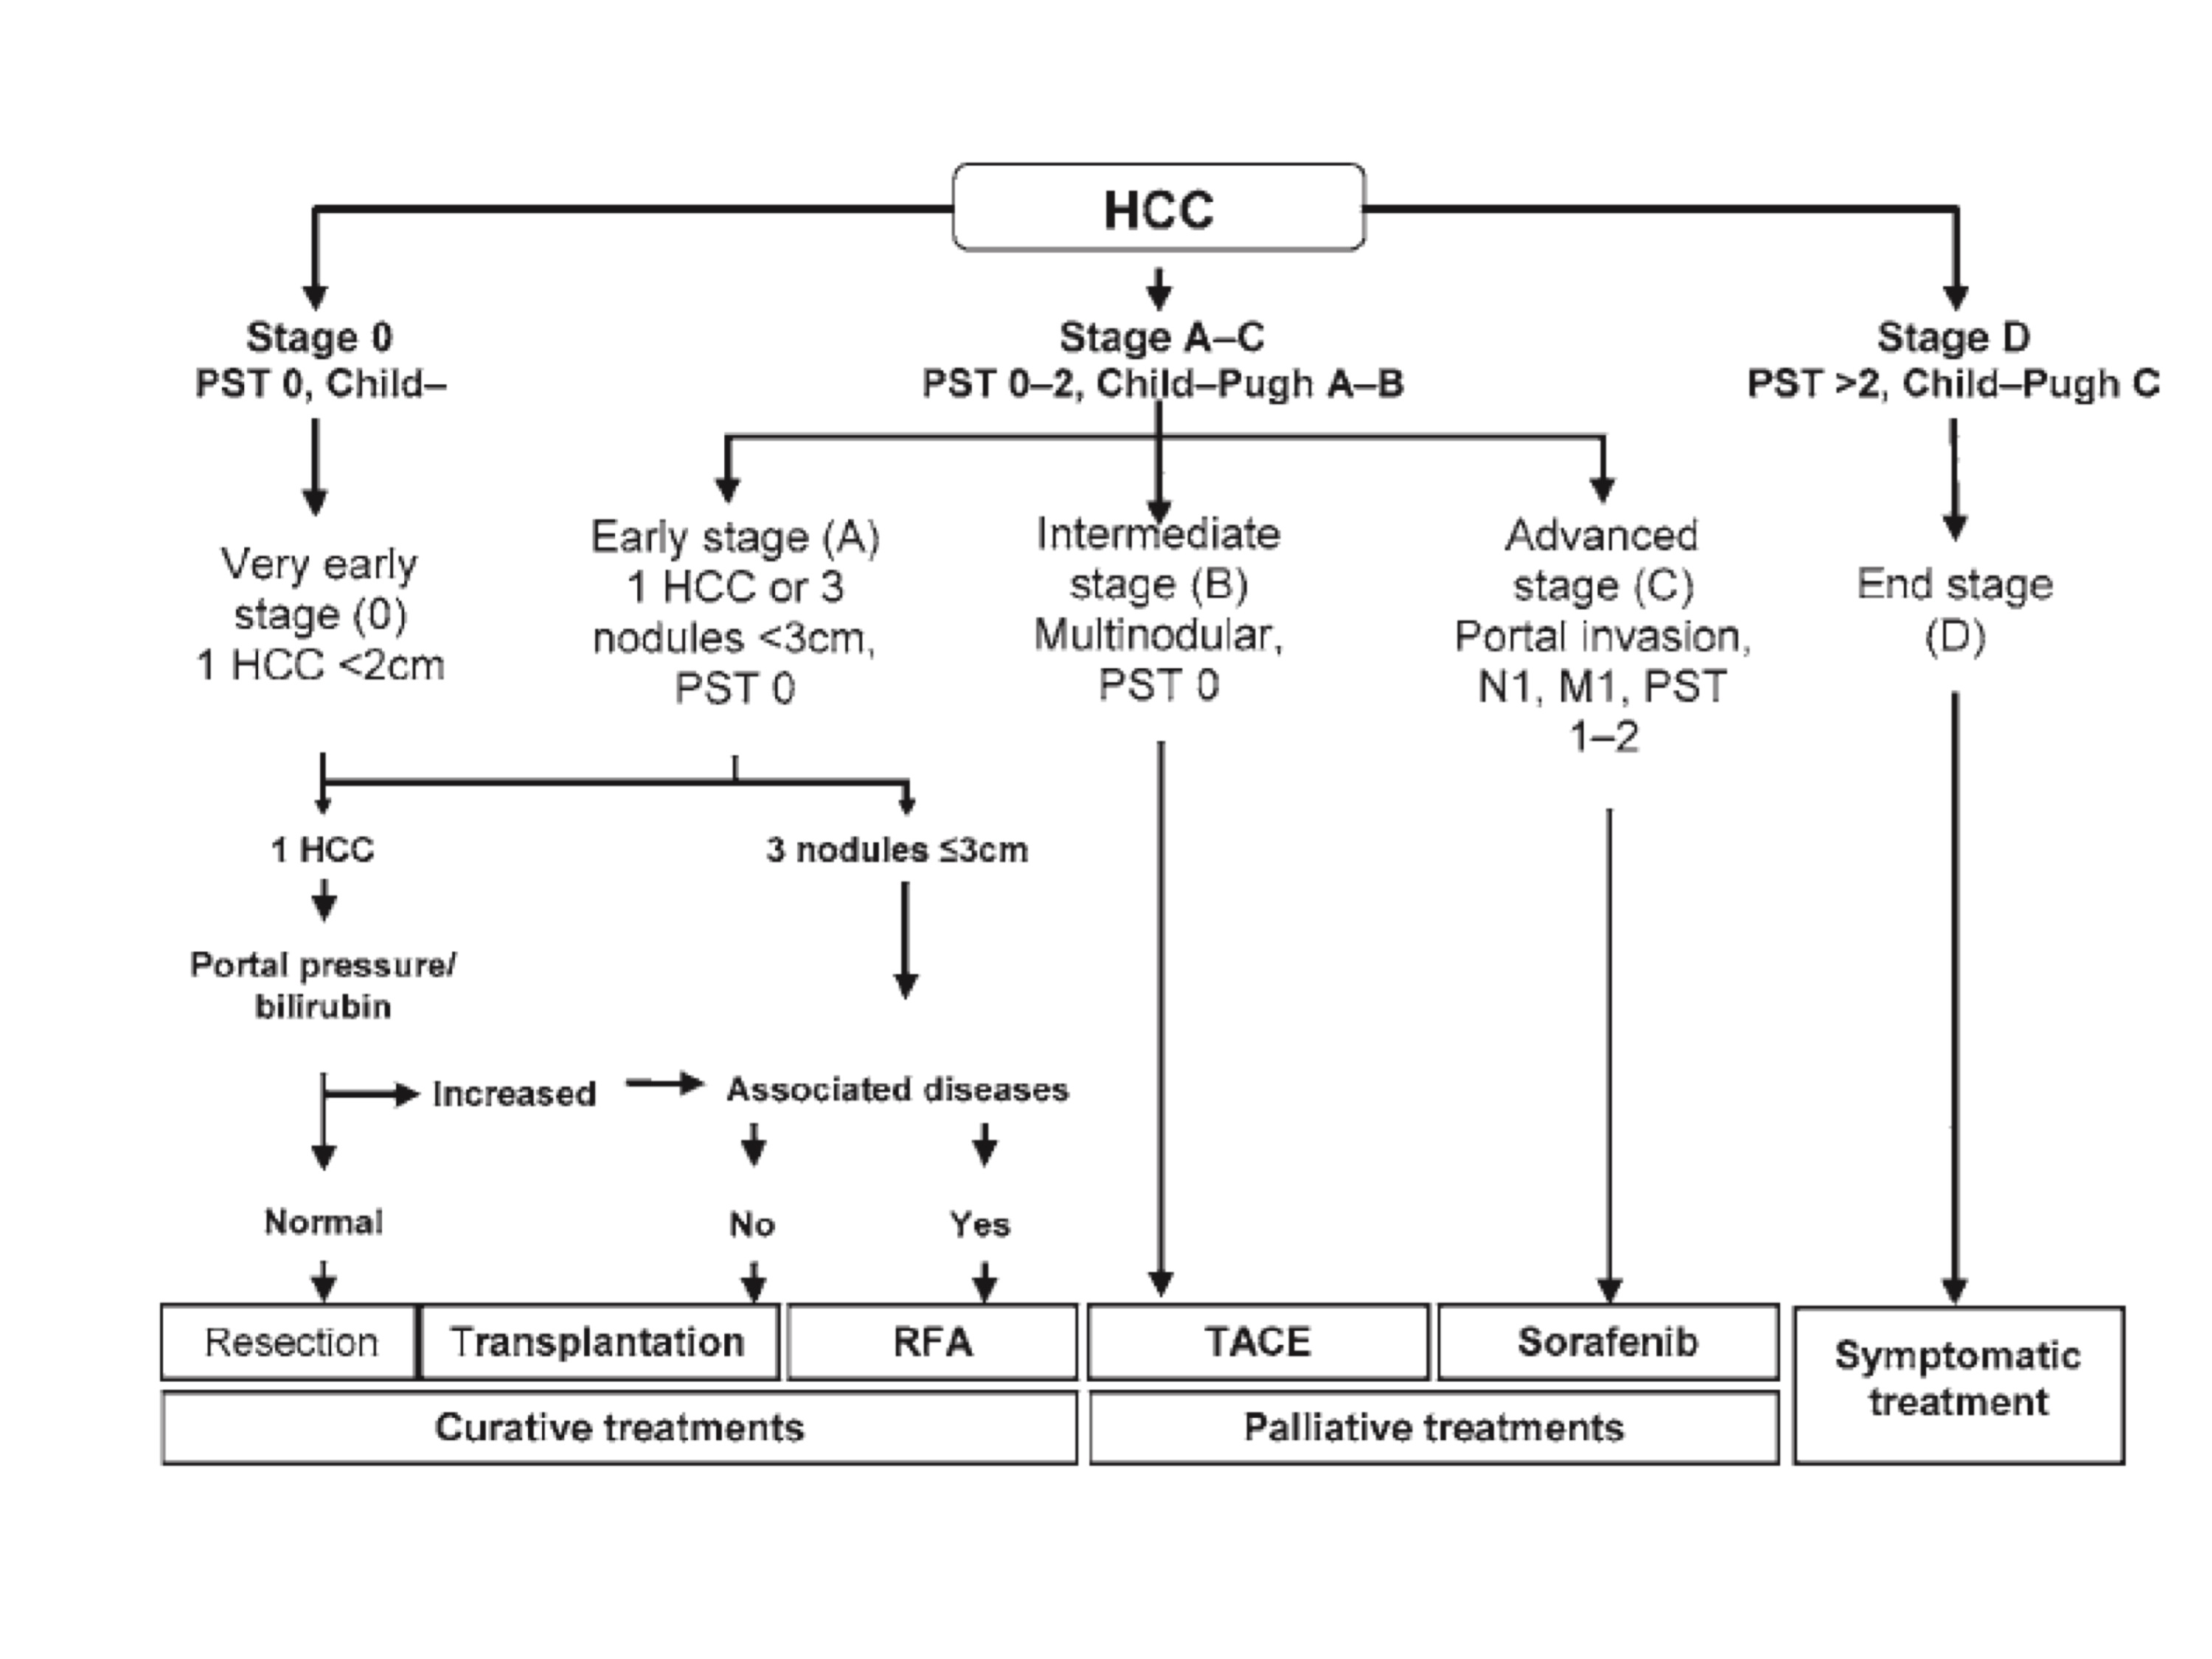 hepatic cancer staging